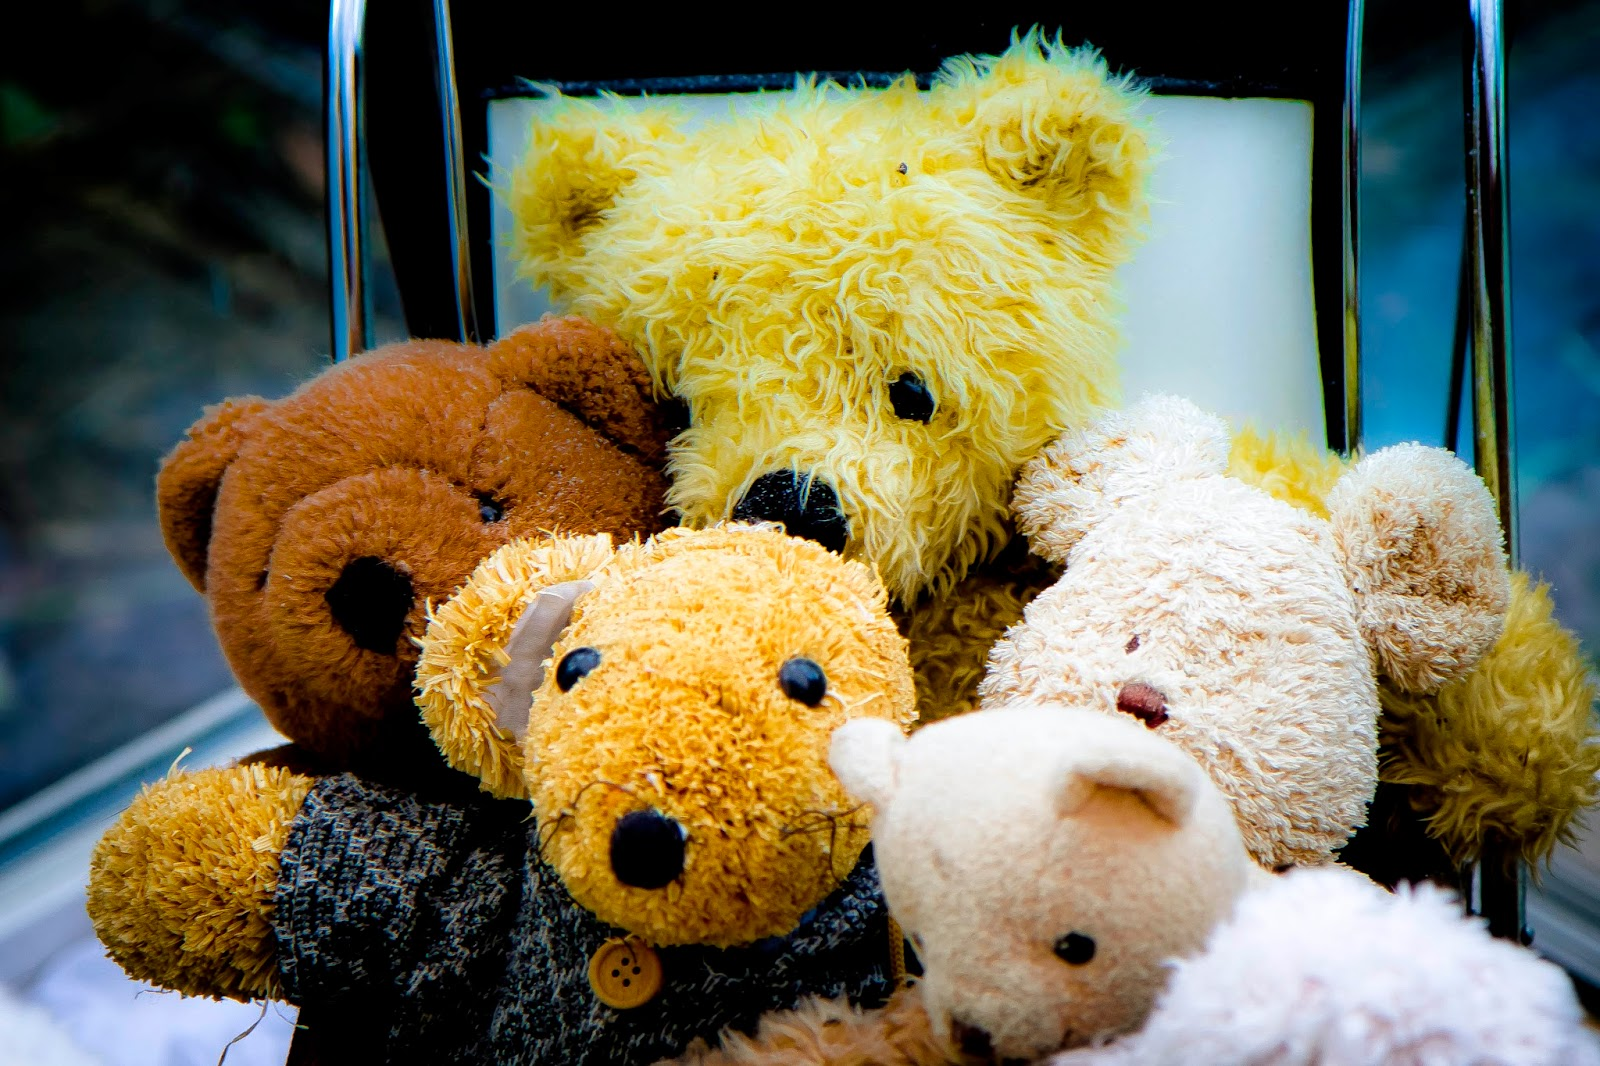 cute-teddy-bear-family-picture-wallpaper-photo-image-3680x2453.jpg